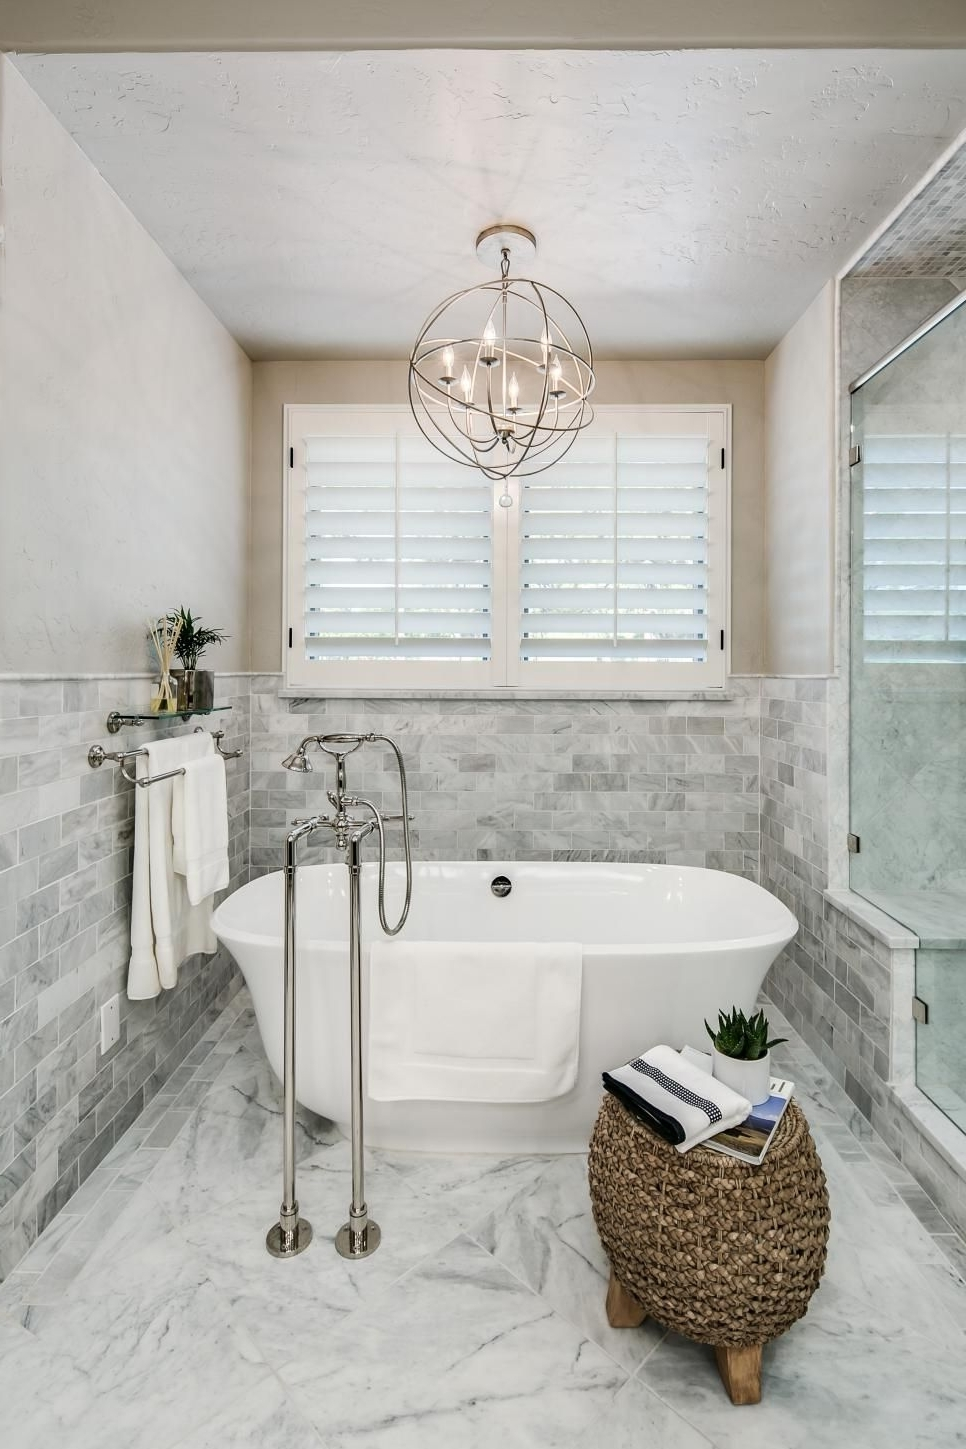 Bathroom Safe Chandeliers Within Most Current A Metal Orb Chandelier Is Centered Above The Freestanding Tub In (View 10 of 20)